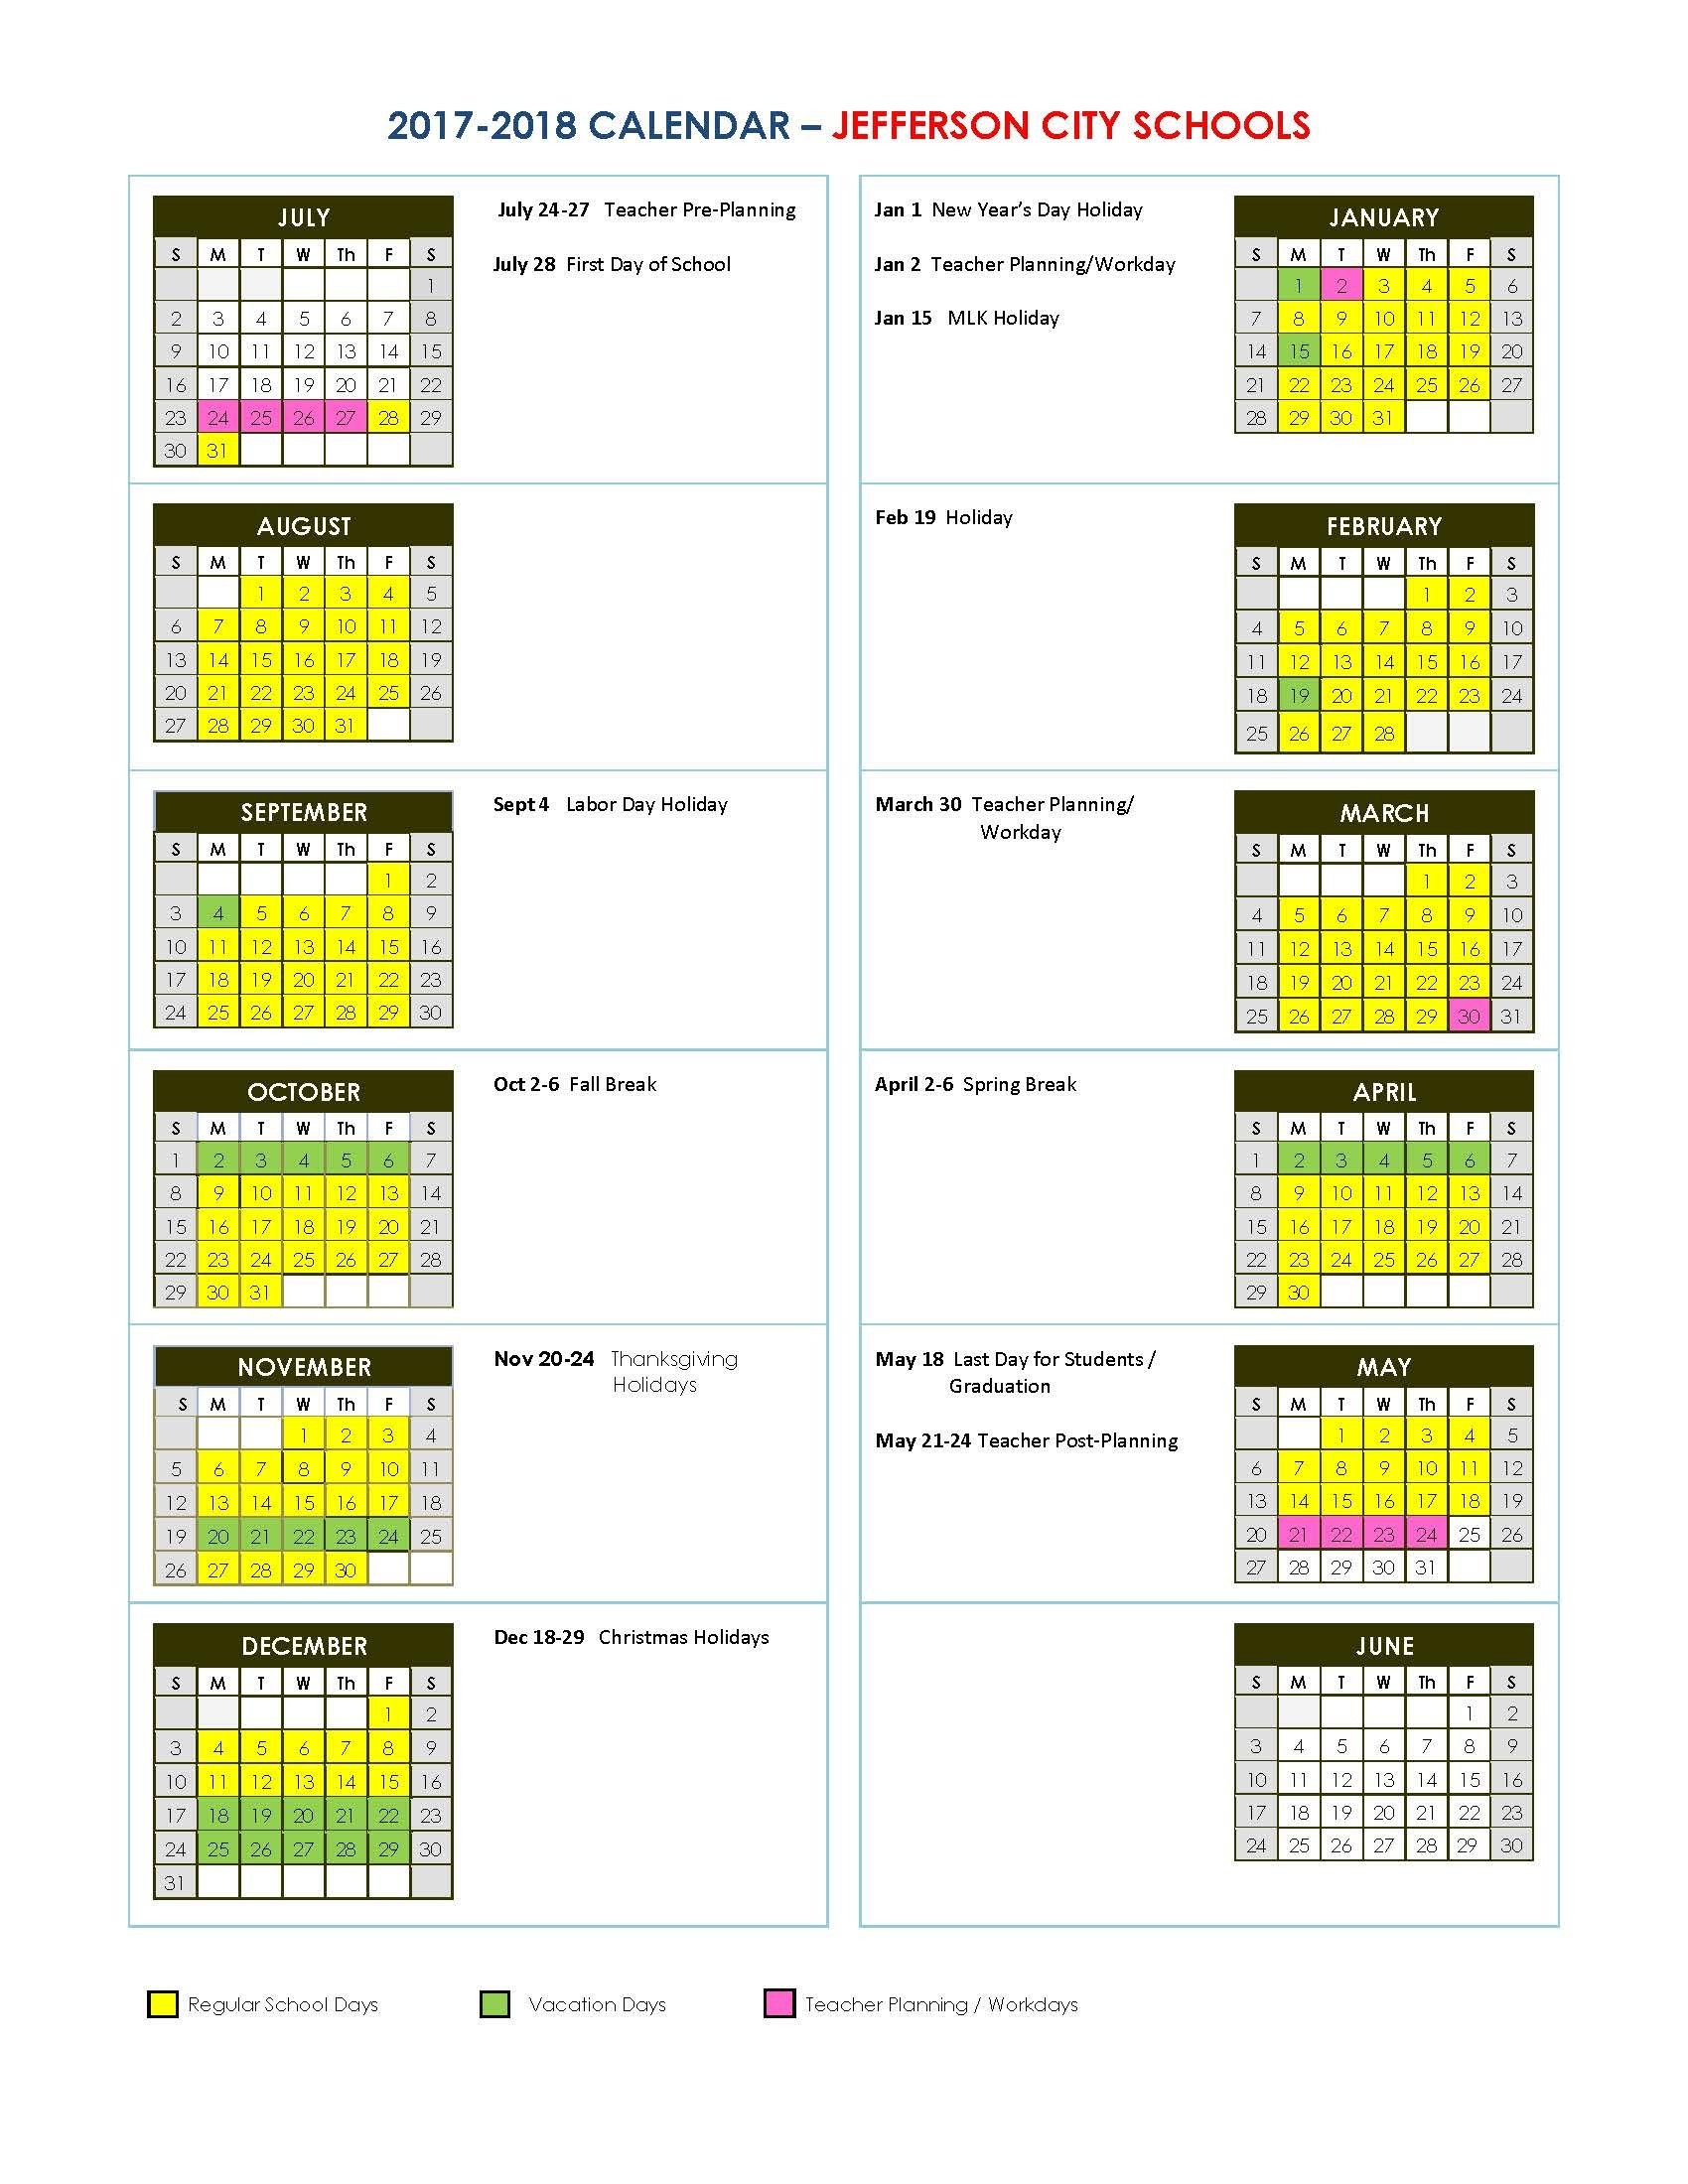 Jefferson City Schools Gwinnett County School Calendar 2019-20